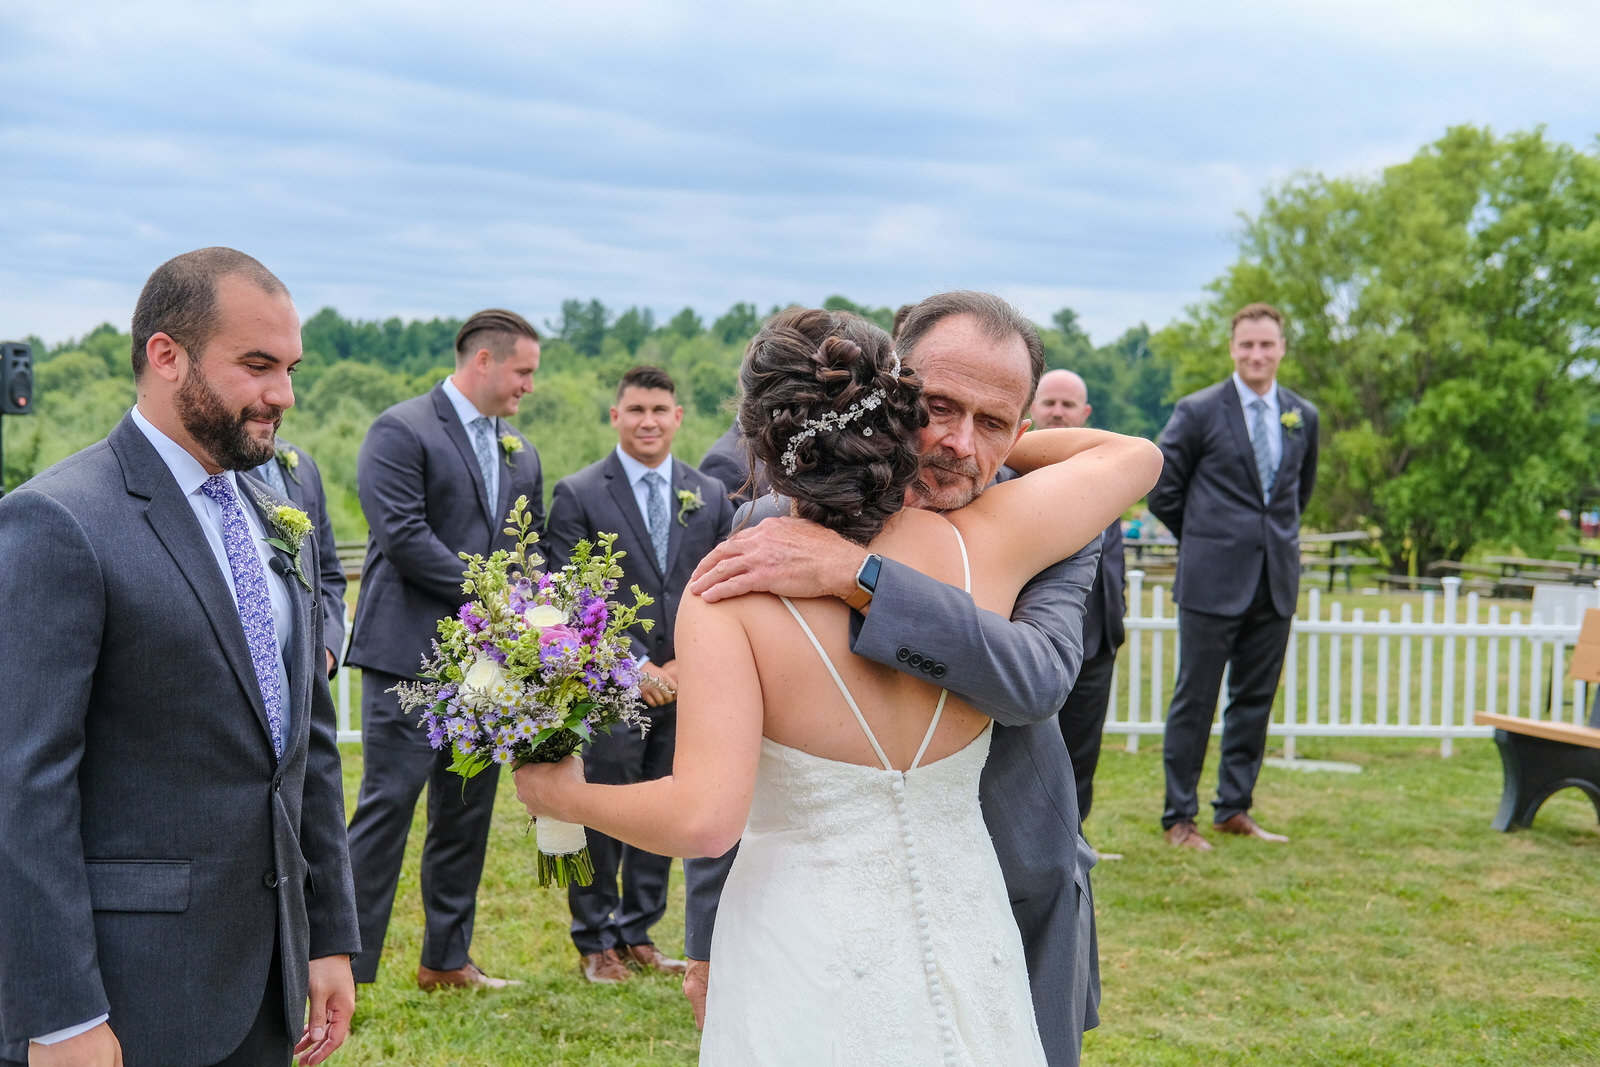 nashoba-valley-winery-wedding-photography-266.jpg